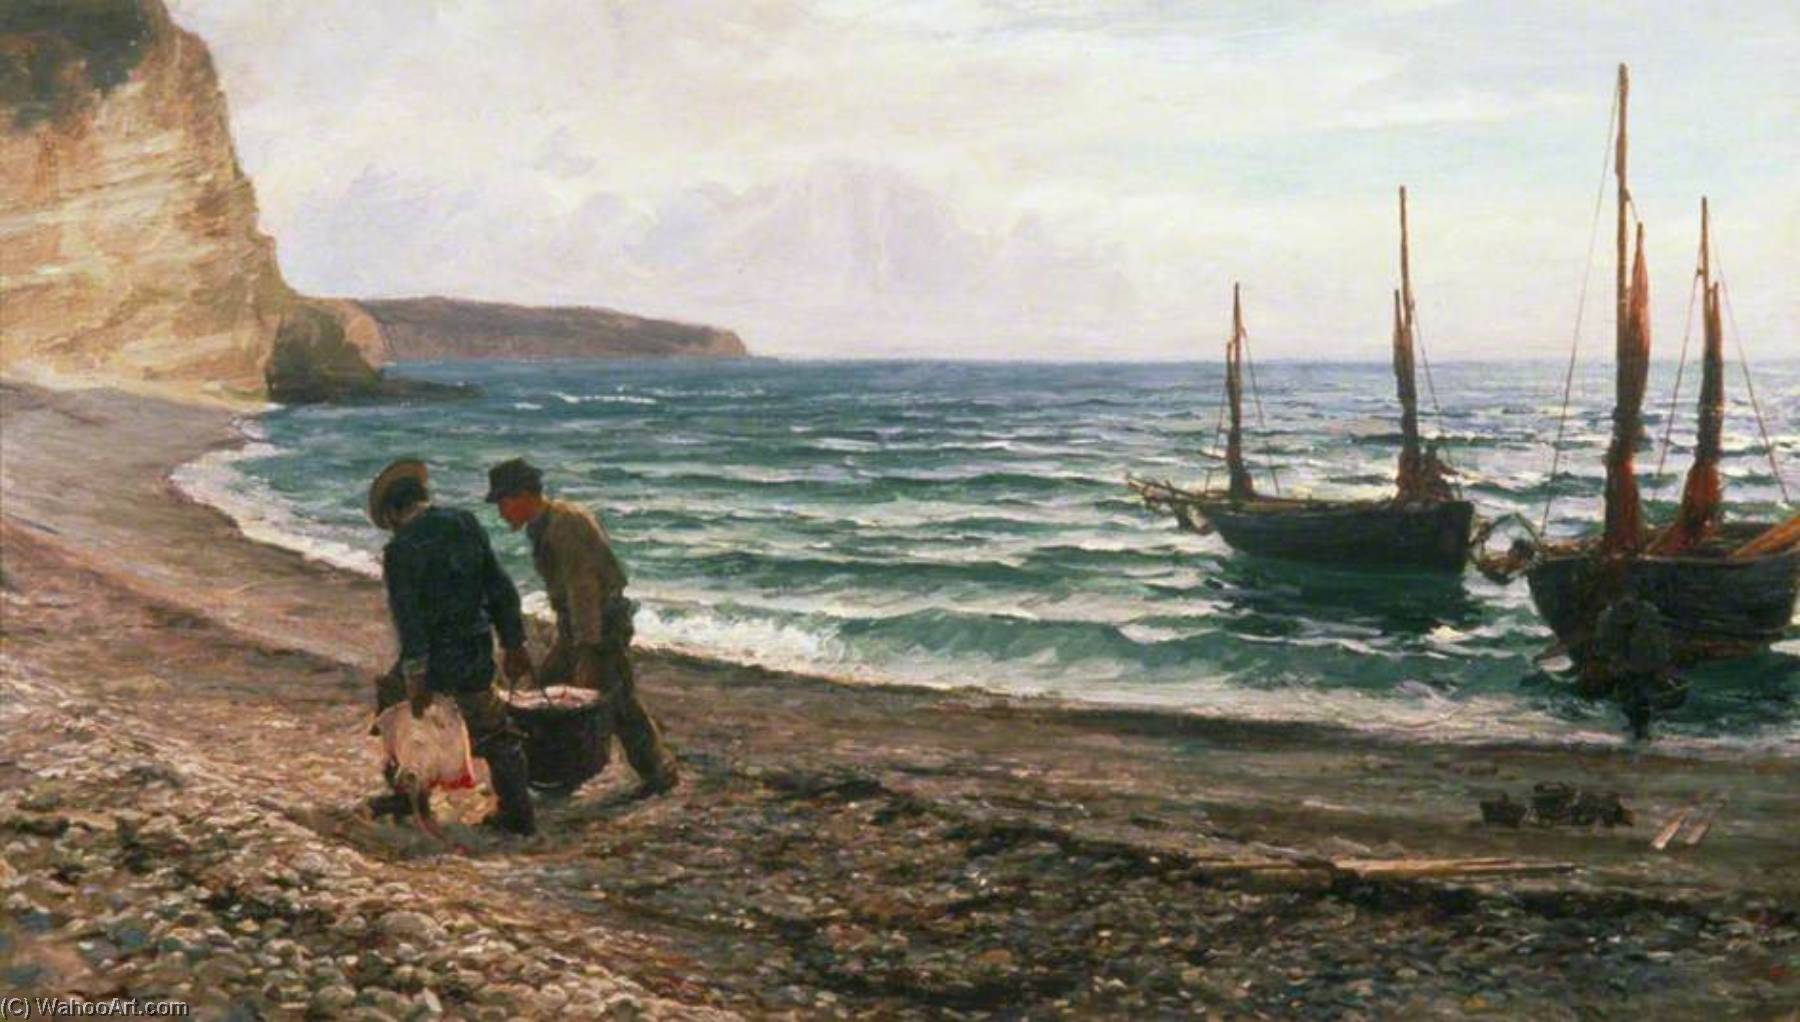 A Sea View, 1879 by Colin Hunter | Reproductions Colin Hunter | ArtsDot.com